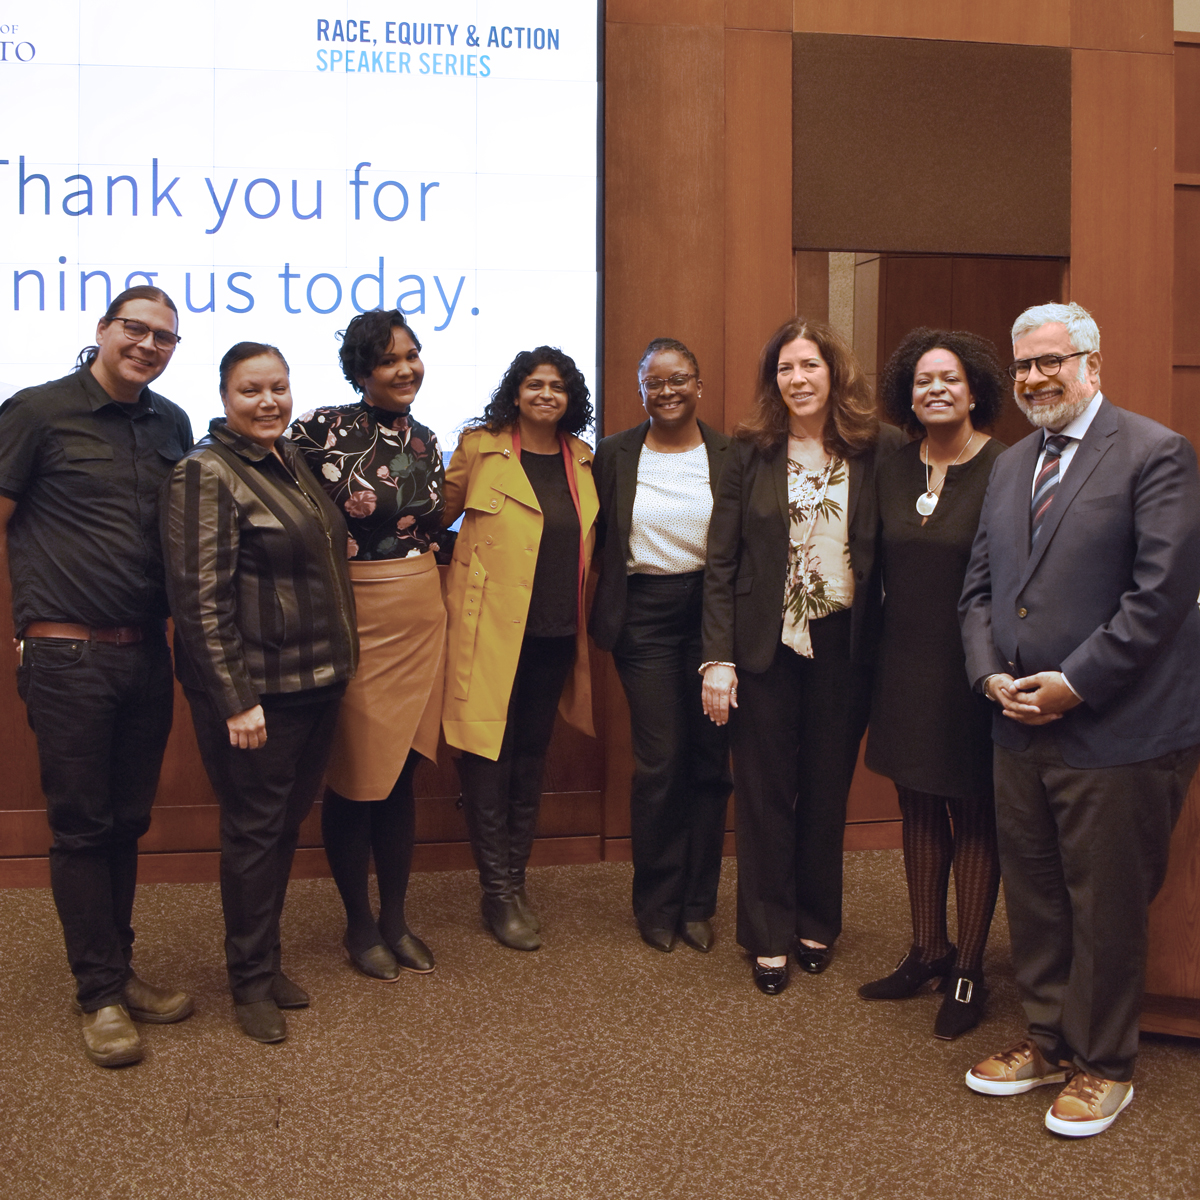 Michael White (Office of Indigenous Initiatives), Saimah Baig (ARCDO), Nikki Samuel (ARCDO), Karima Hashmani (Equity, Diversity & Inclusion), Jodie Glean-Mitchell (ARCDO), Kelly Hannah-Moffat (VP, HR & E), Dr. Lisa Coleman, and Nouman Ashraf (Rotman) pose for a photo